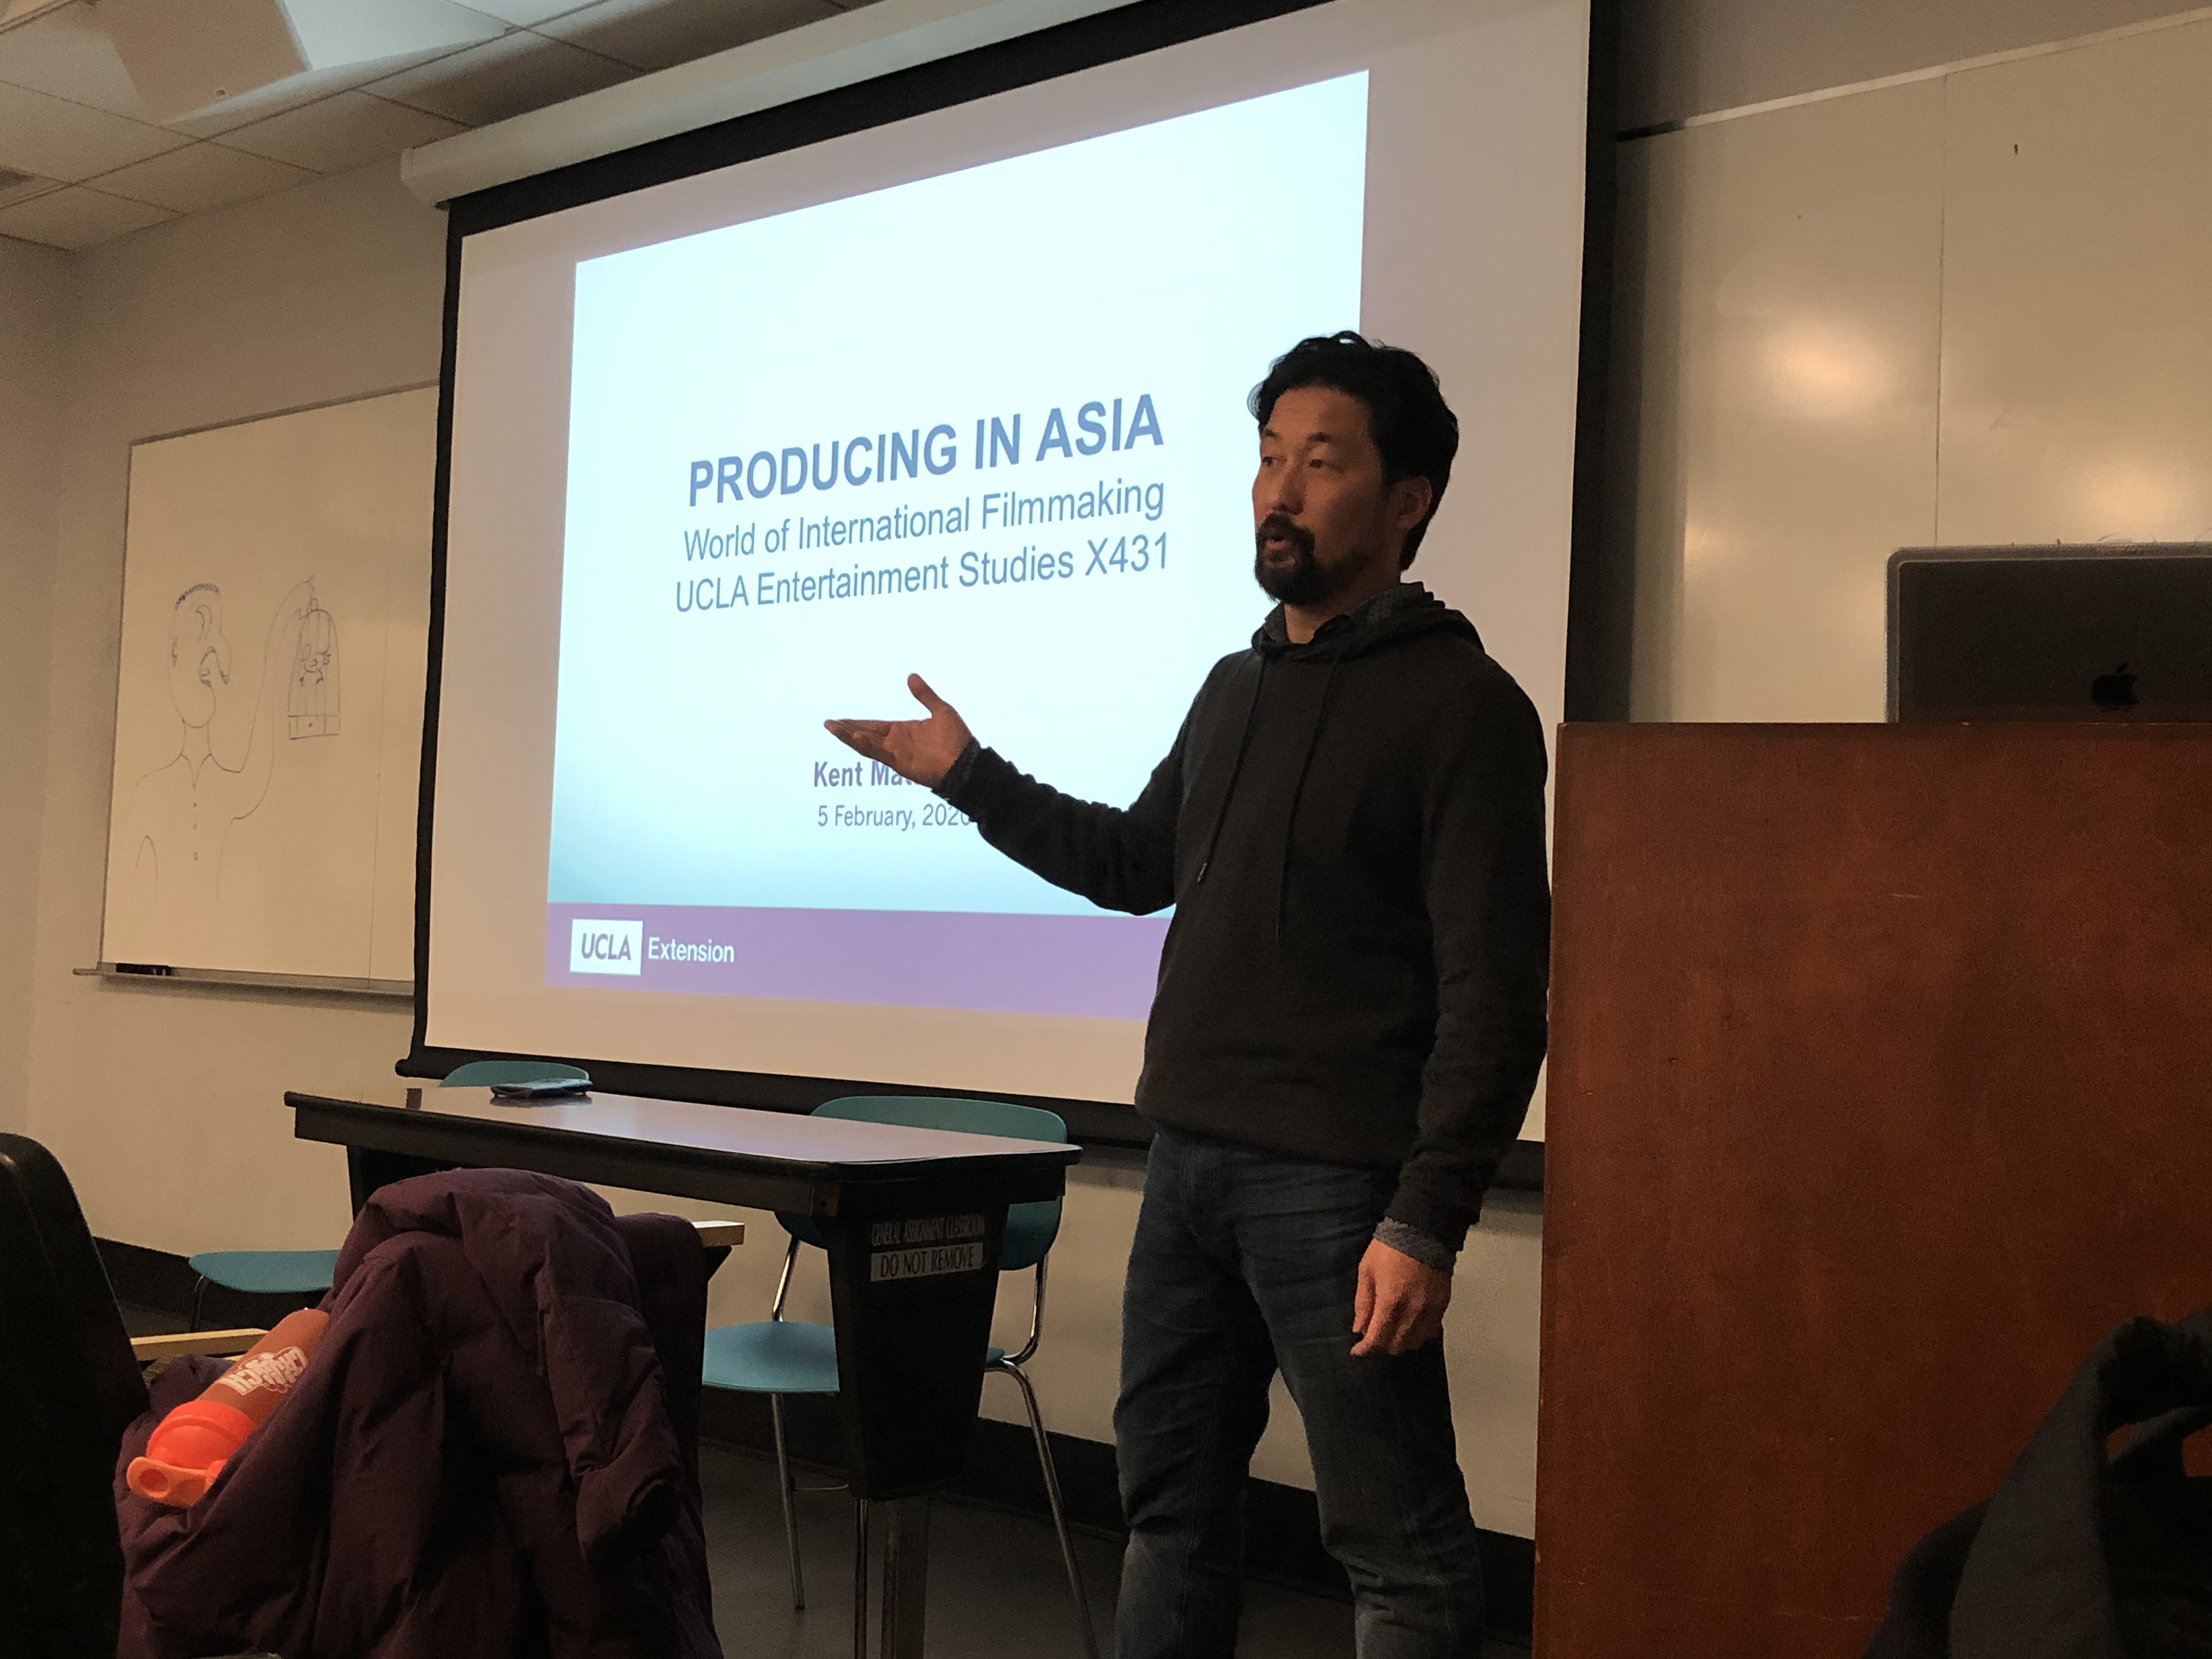 Kent Matsuoka introduces students to aspects of Asian production practices at UCLA Extension